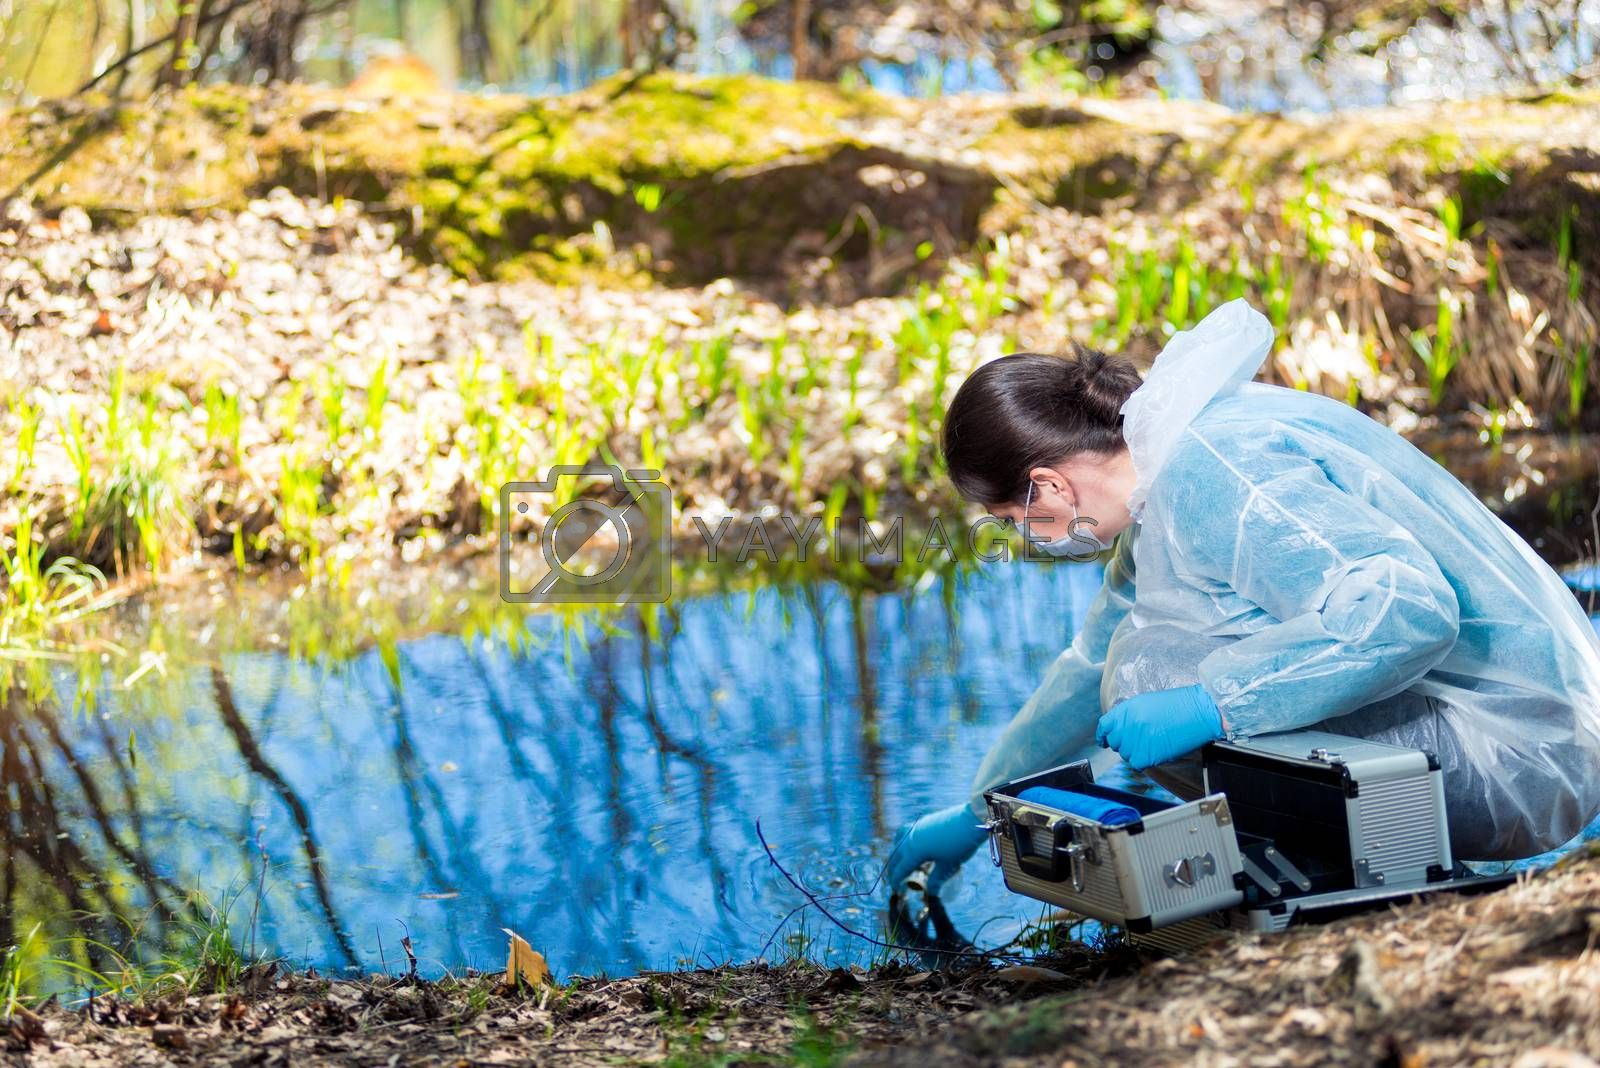 a chemist conducts a study of water from a natural source in the forest, identifying an epidemic